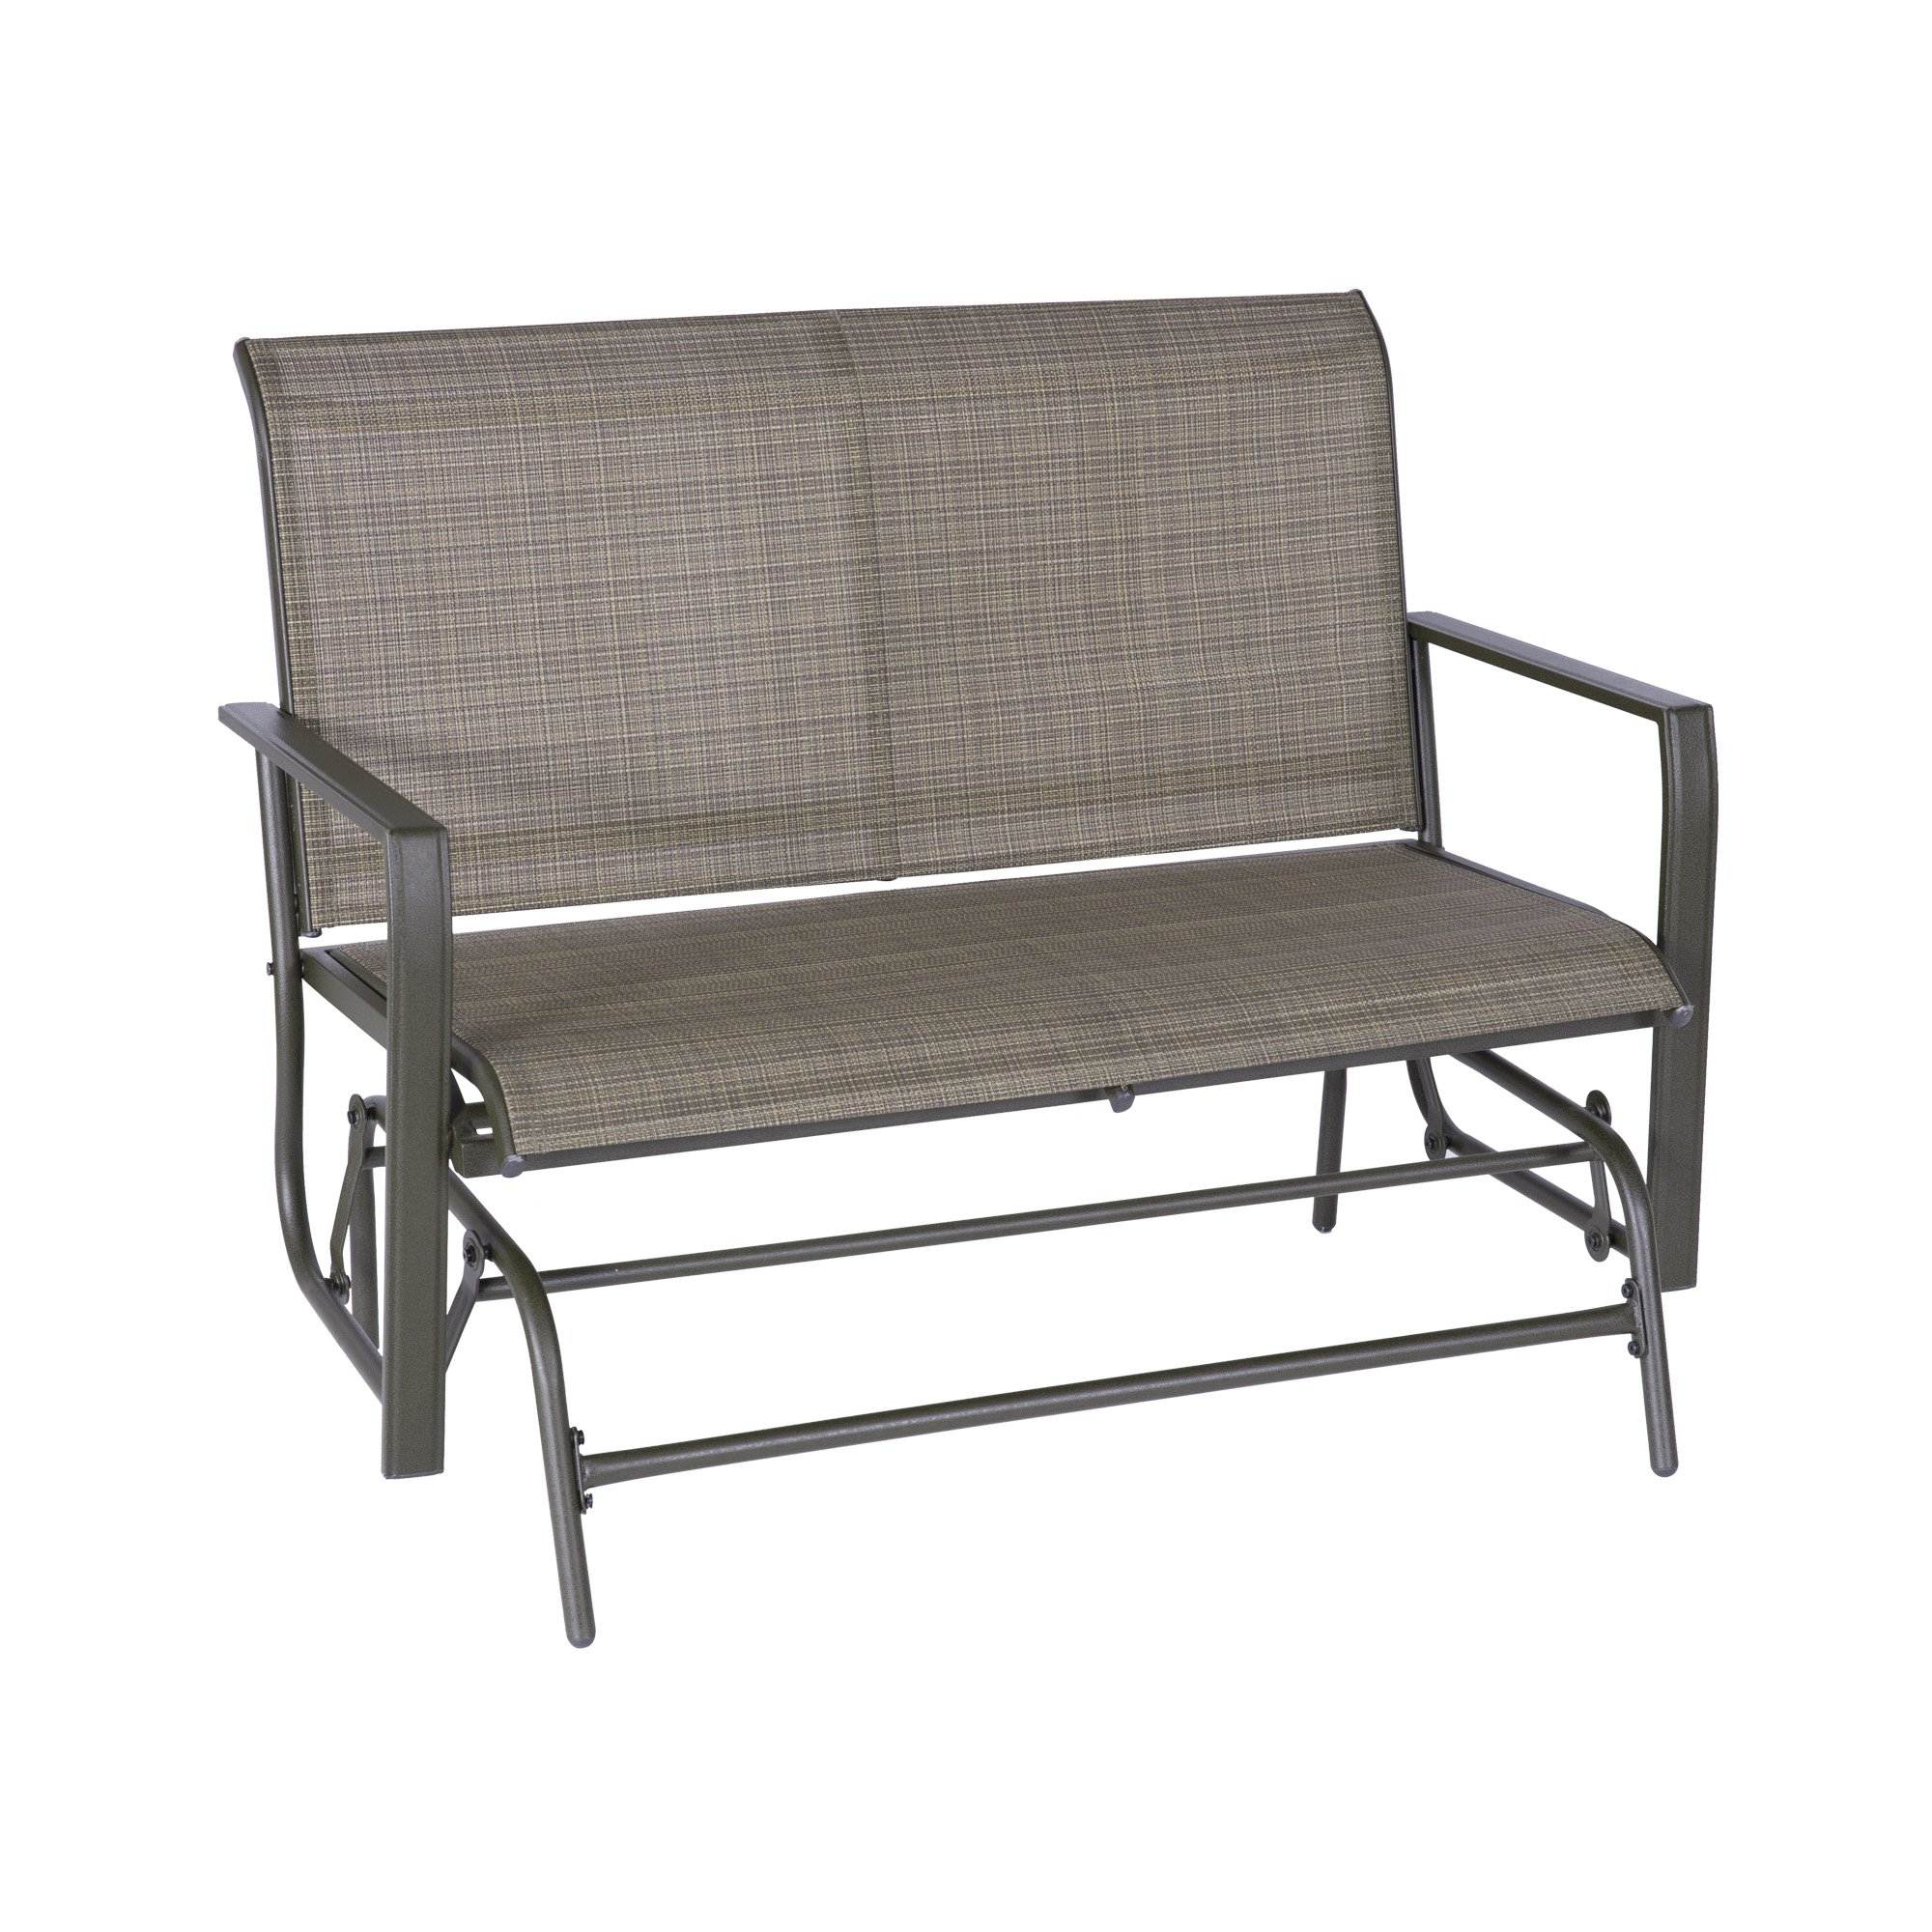 Patio Glider Bench Loveseat Outdoor Cushioed 2 Person Within Latest Loveseat Glider Benches (View 9 of 30)